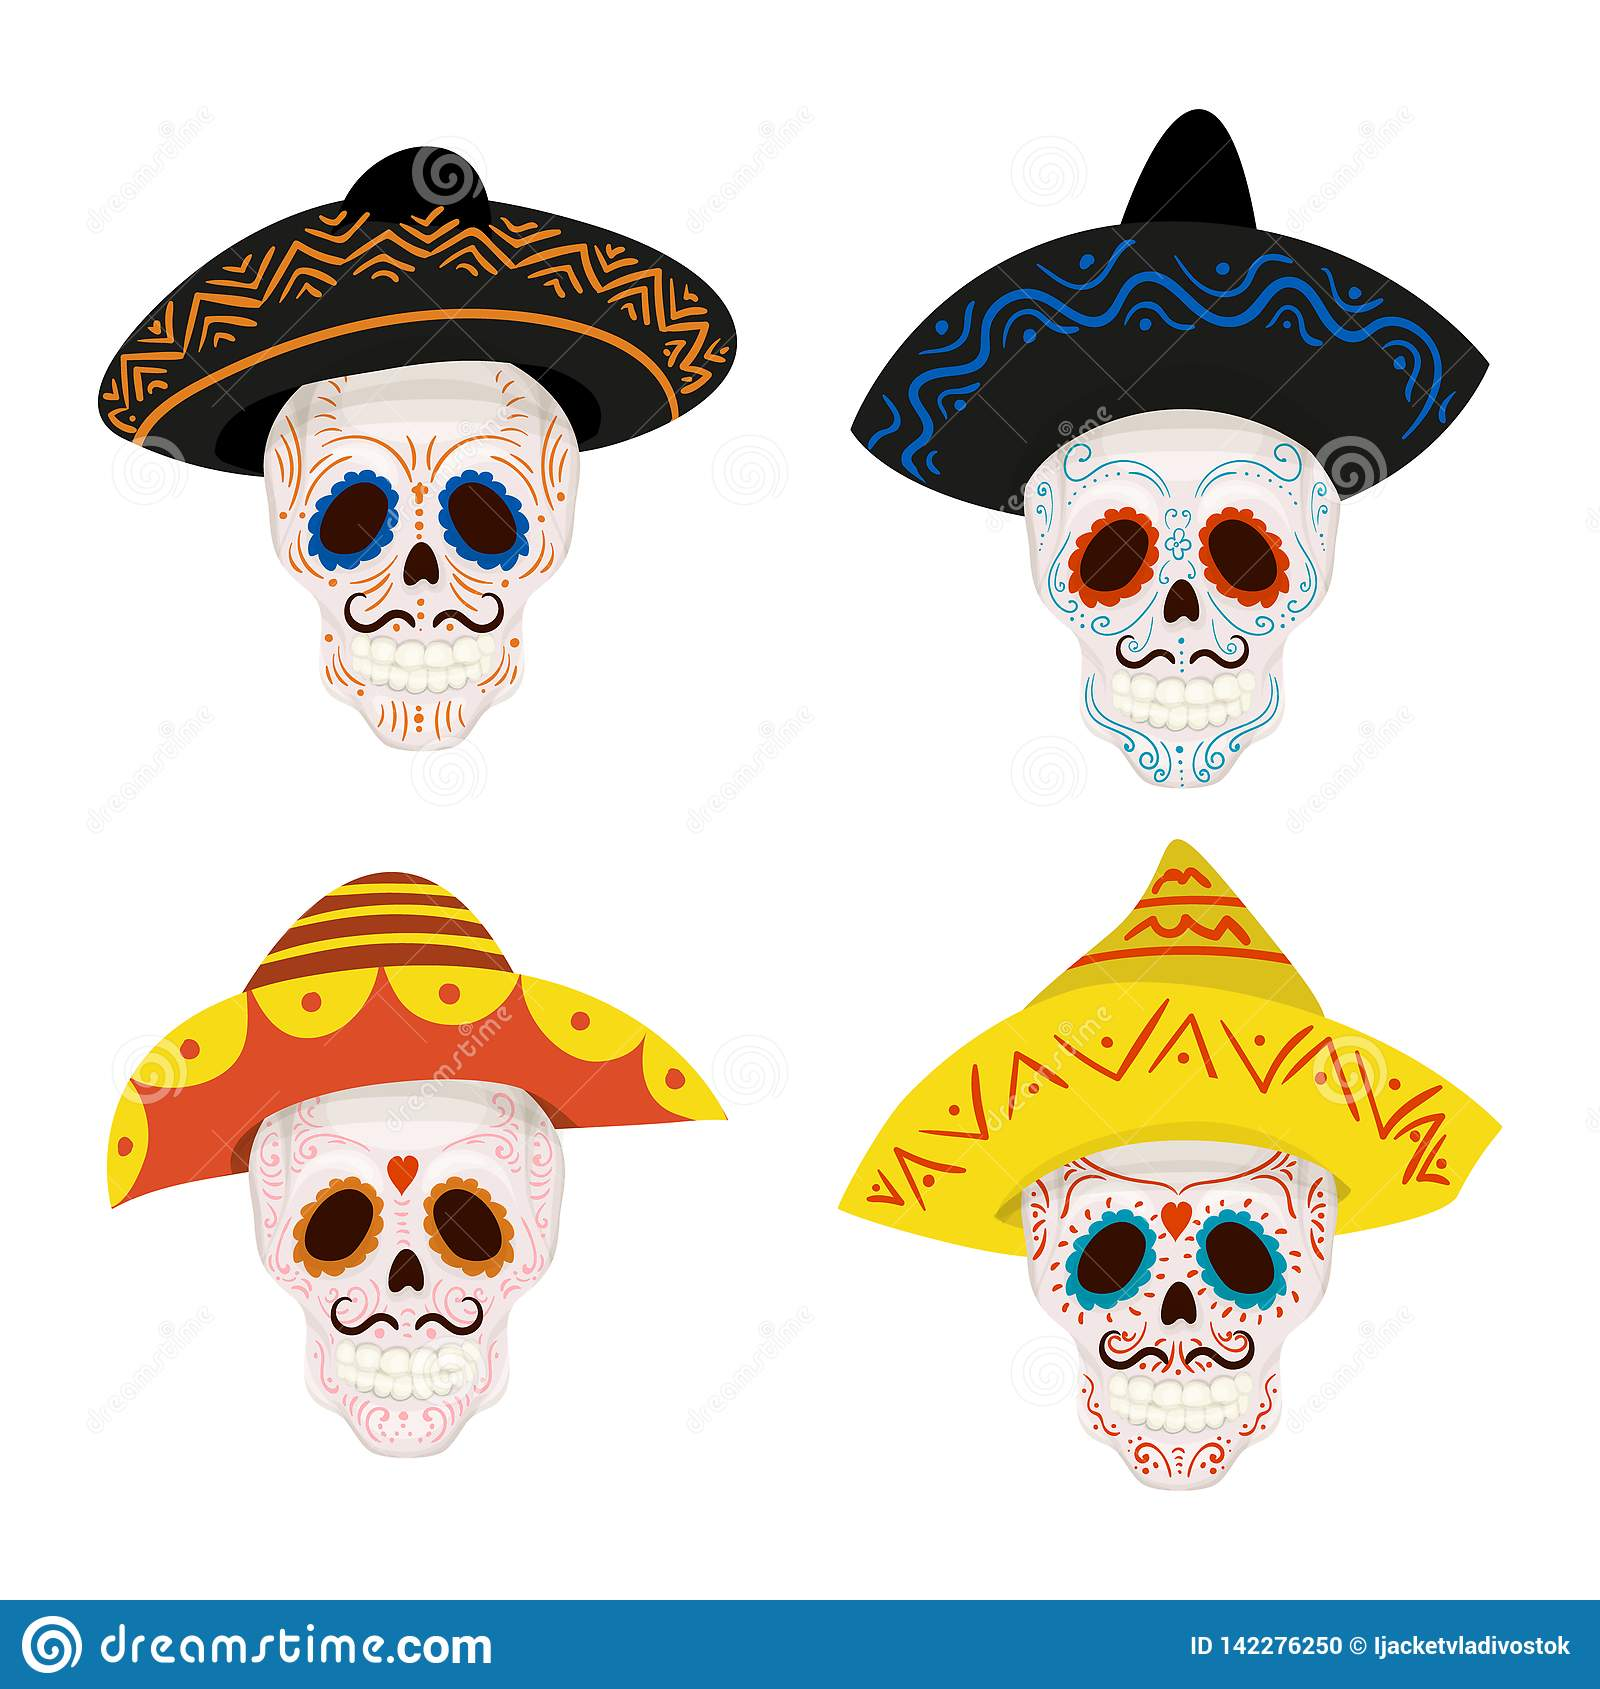 Cartoon Mexican Sugar Skull Illustration For Day Of The Dead Stock Vector Illustration Of Painted Mexico 142276250